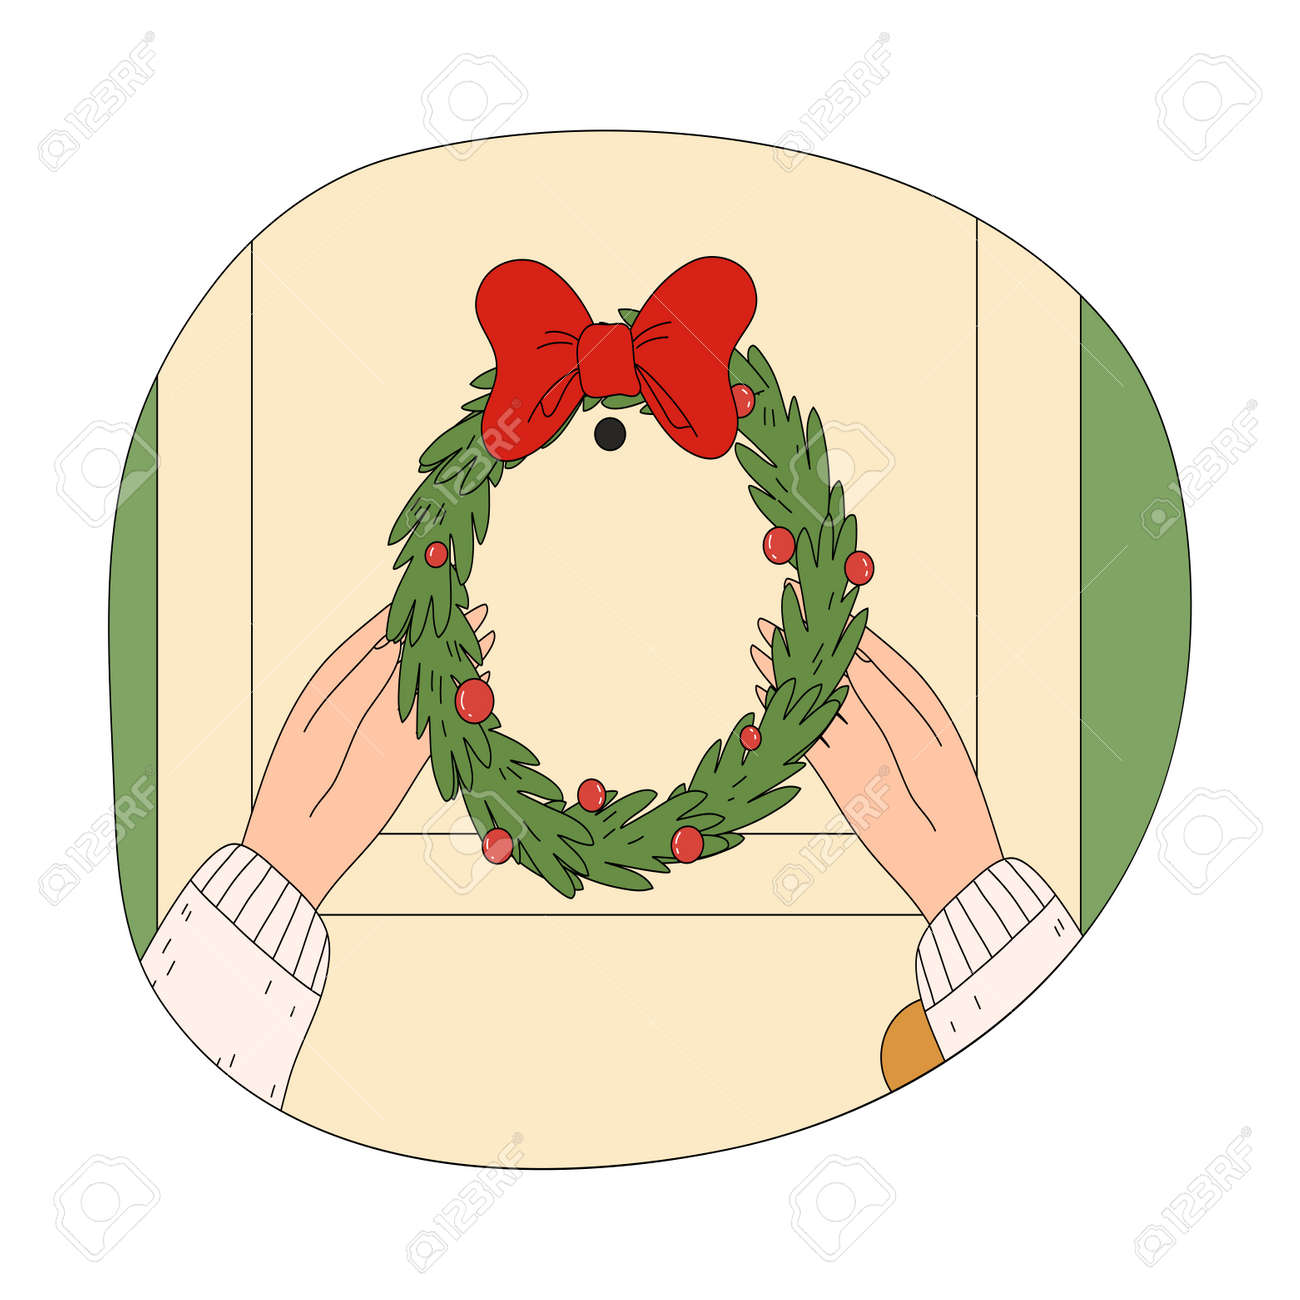 Human hands putting hanging ornate wreath on door during Christmas celebration - 162069960